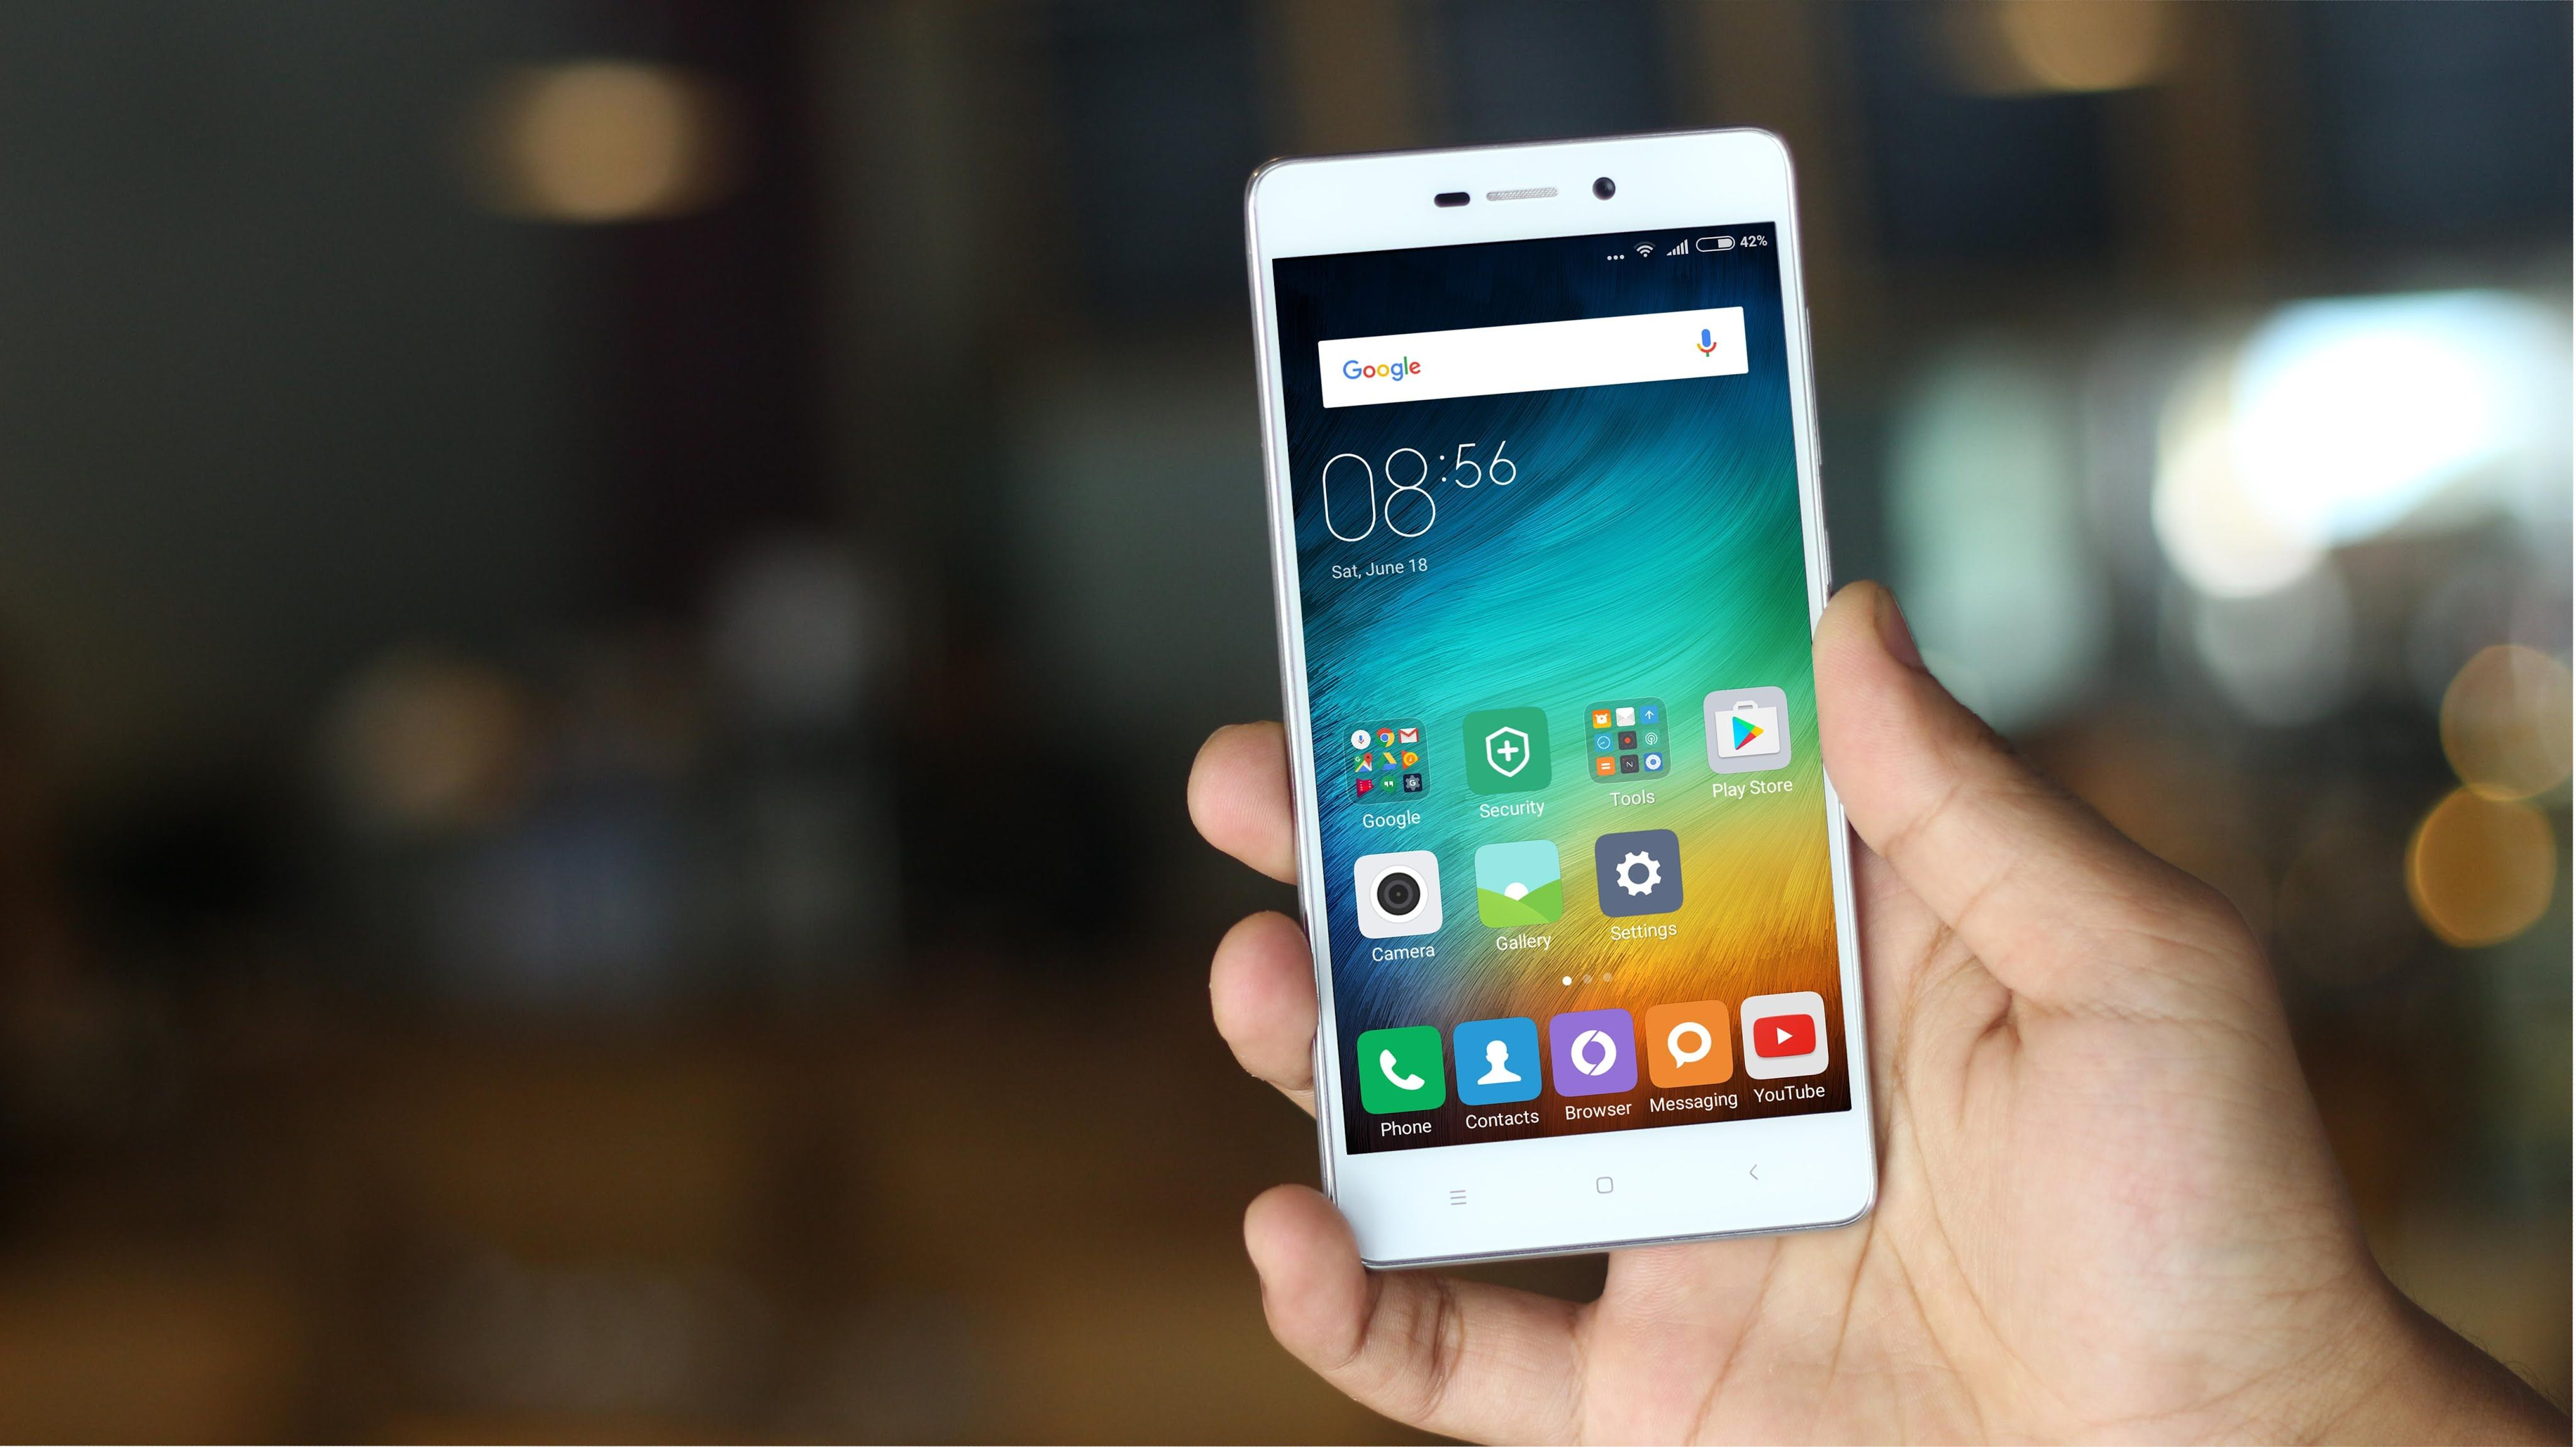 Awesome Xiaomi Redmi 3 Pro Review Budget Friendly Meets The Premium Check More At Https